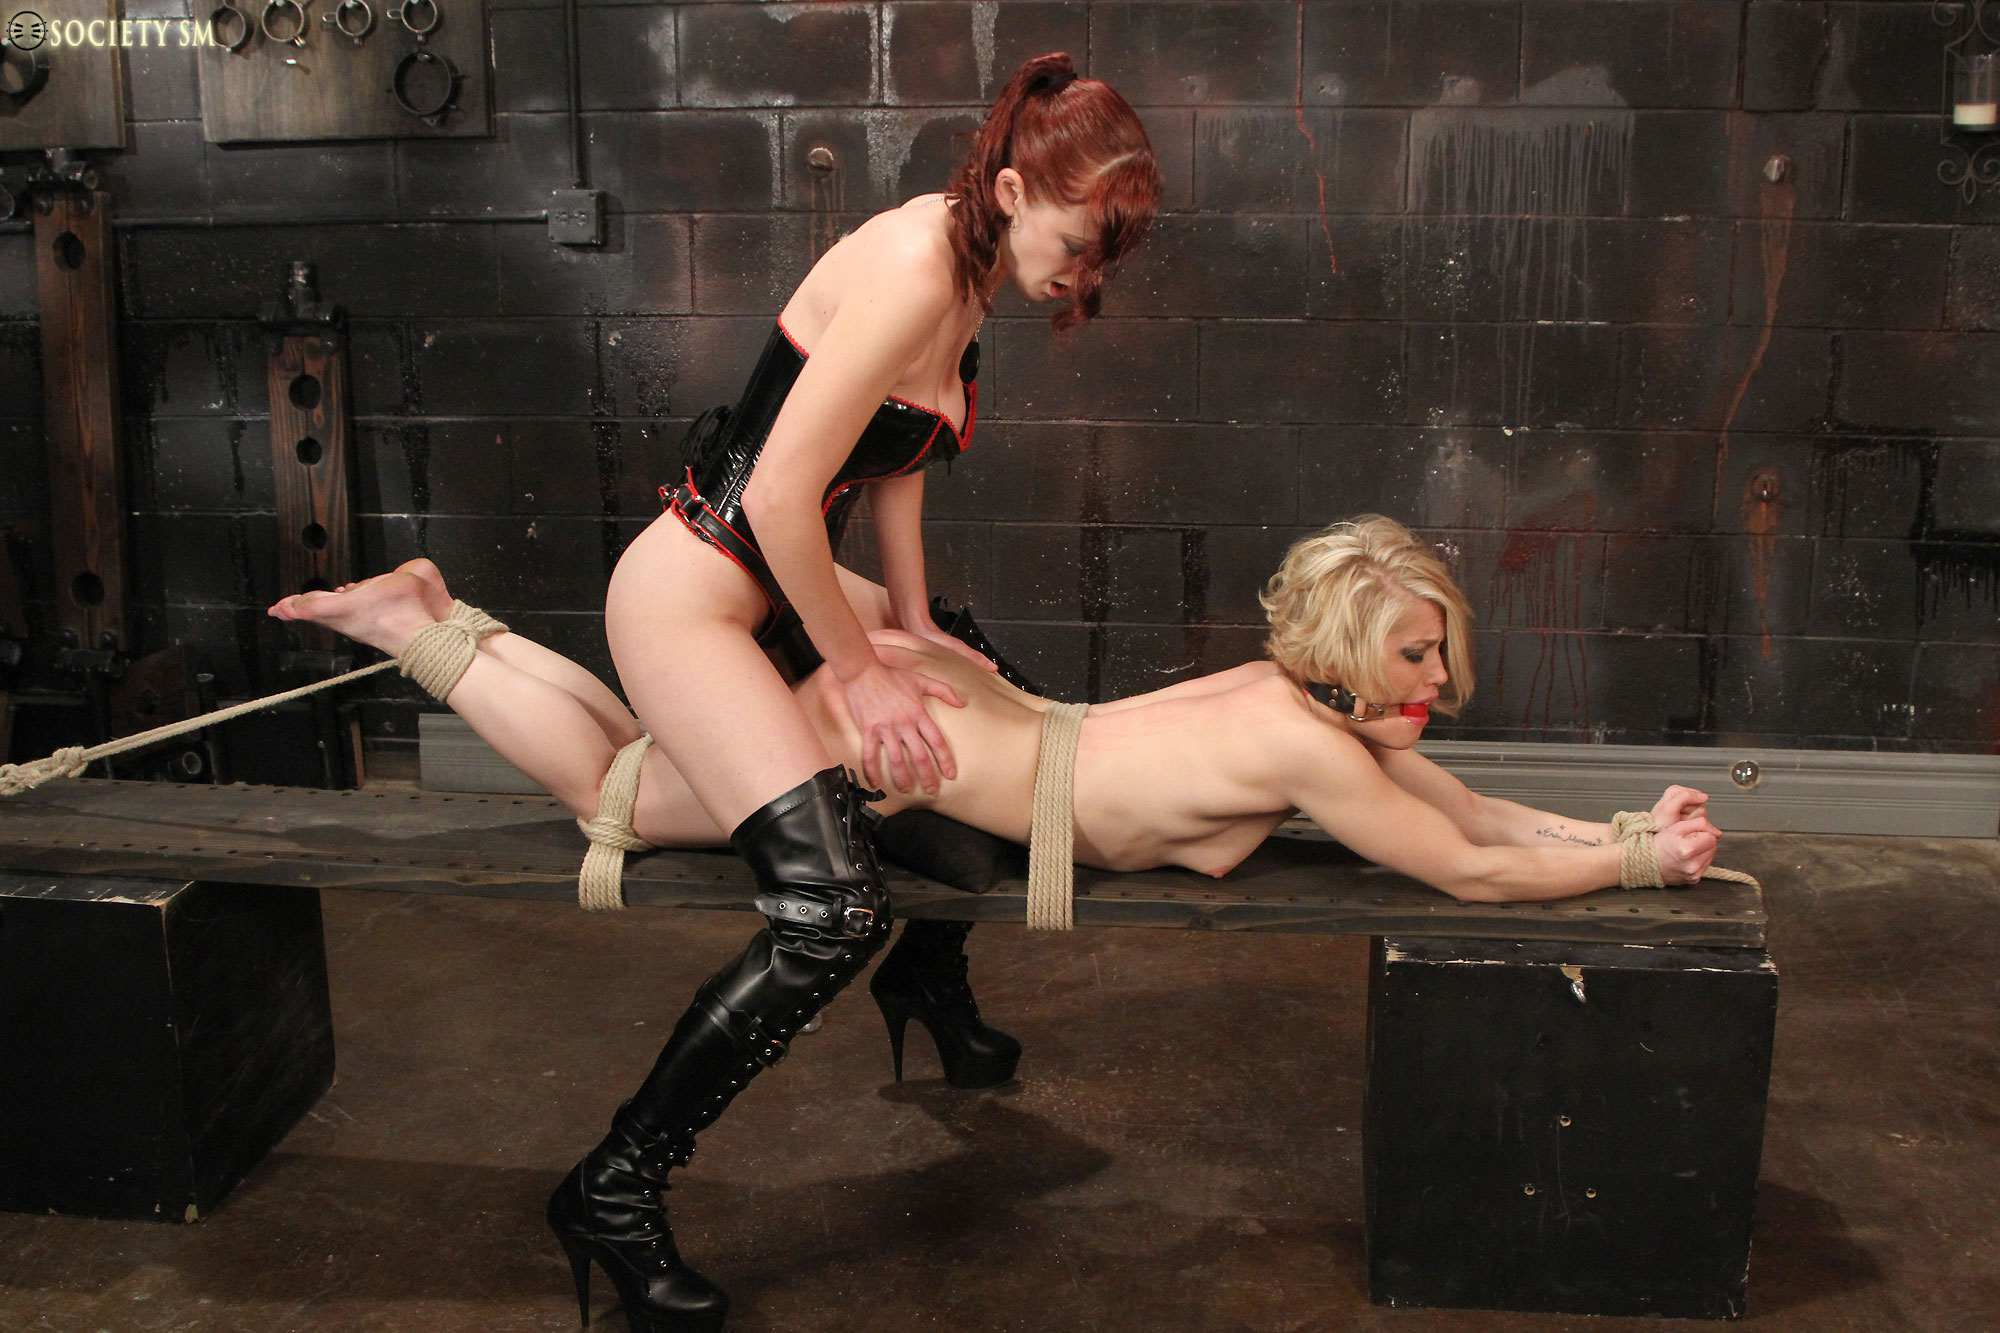 bdsm-video-onlayn-besplatno